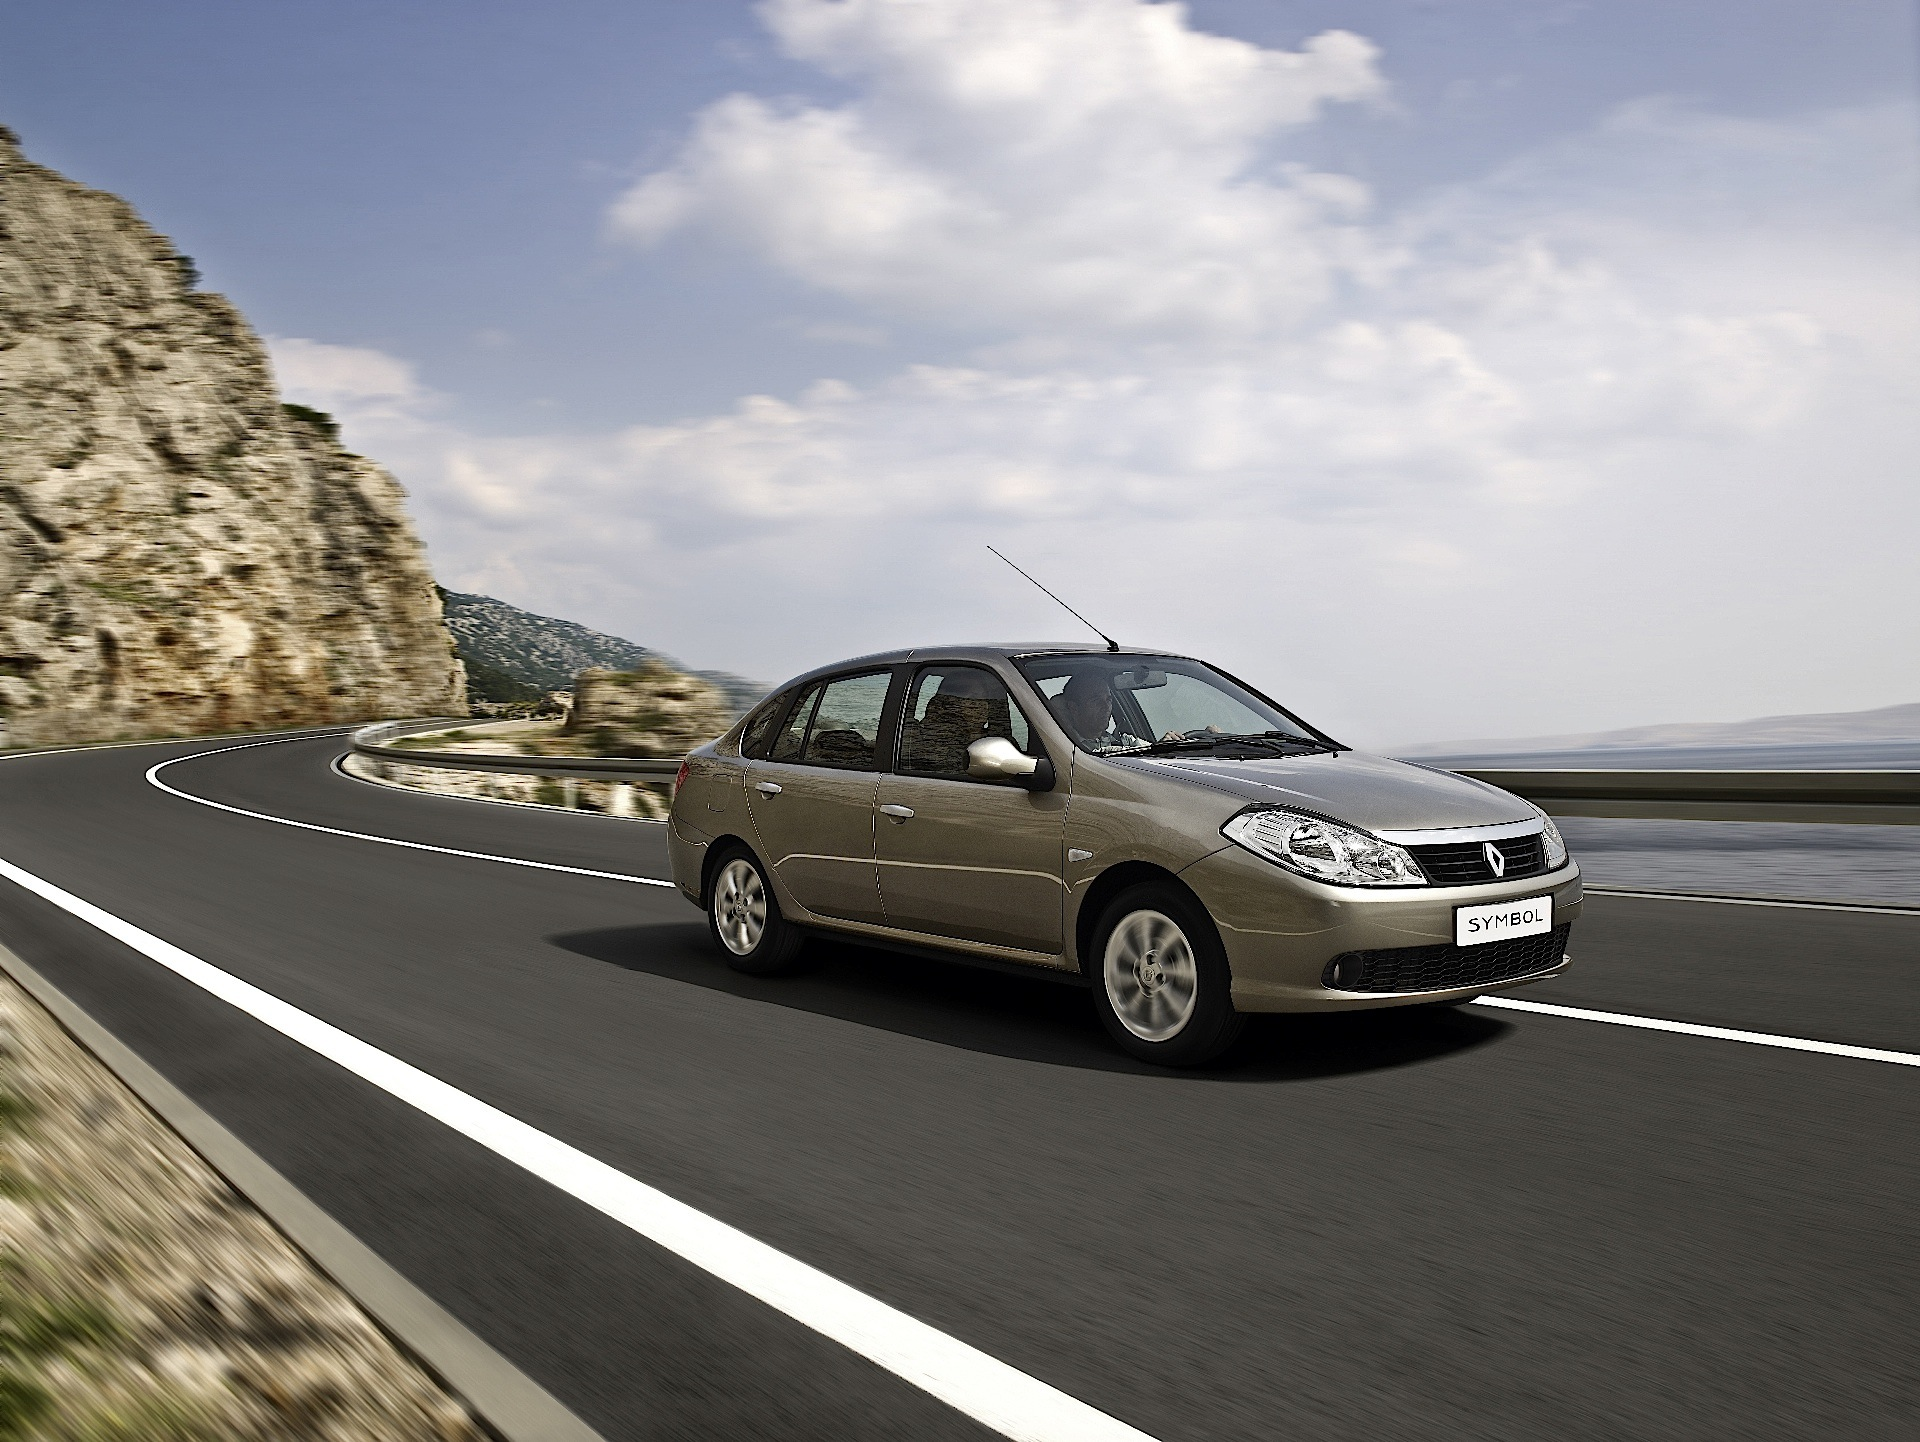 2006 renault clio owners manual